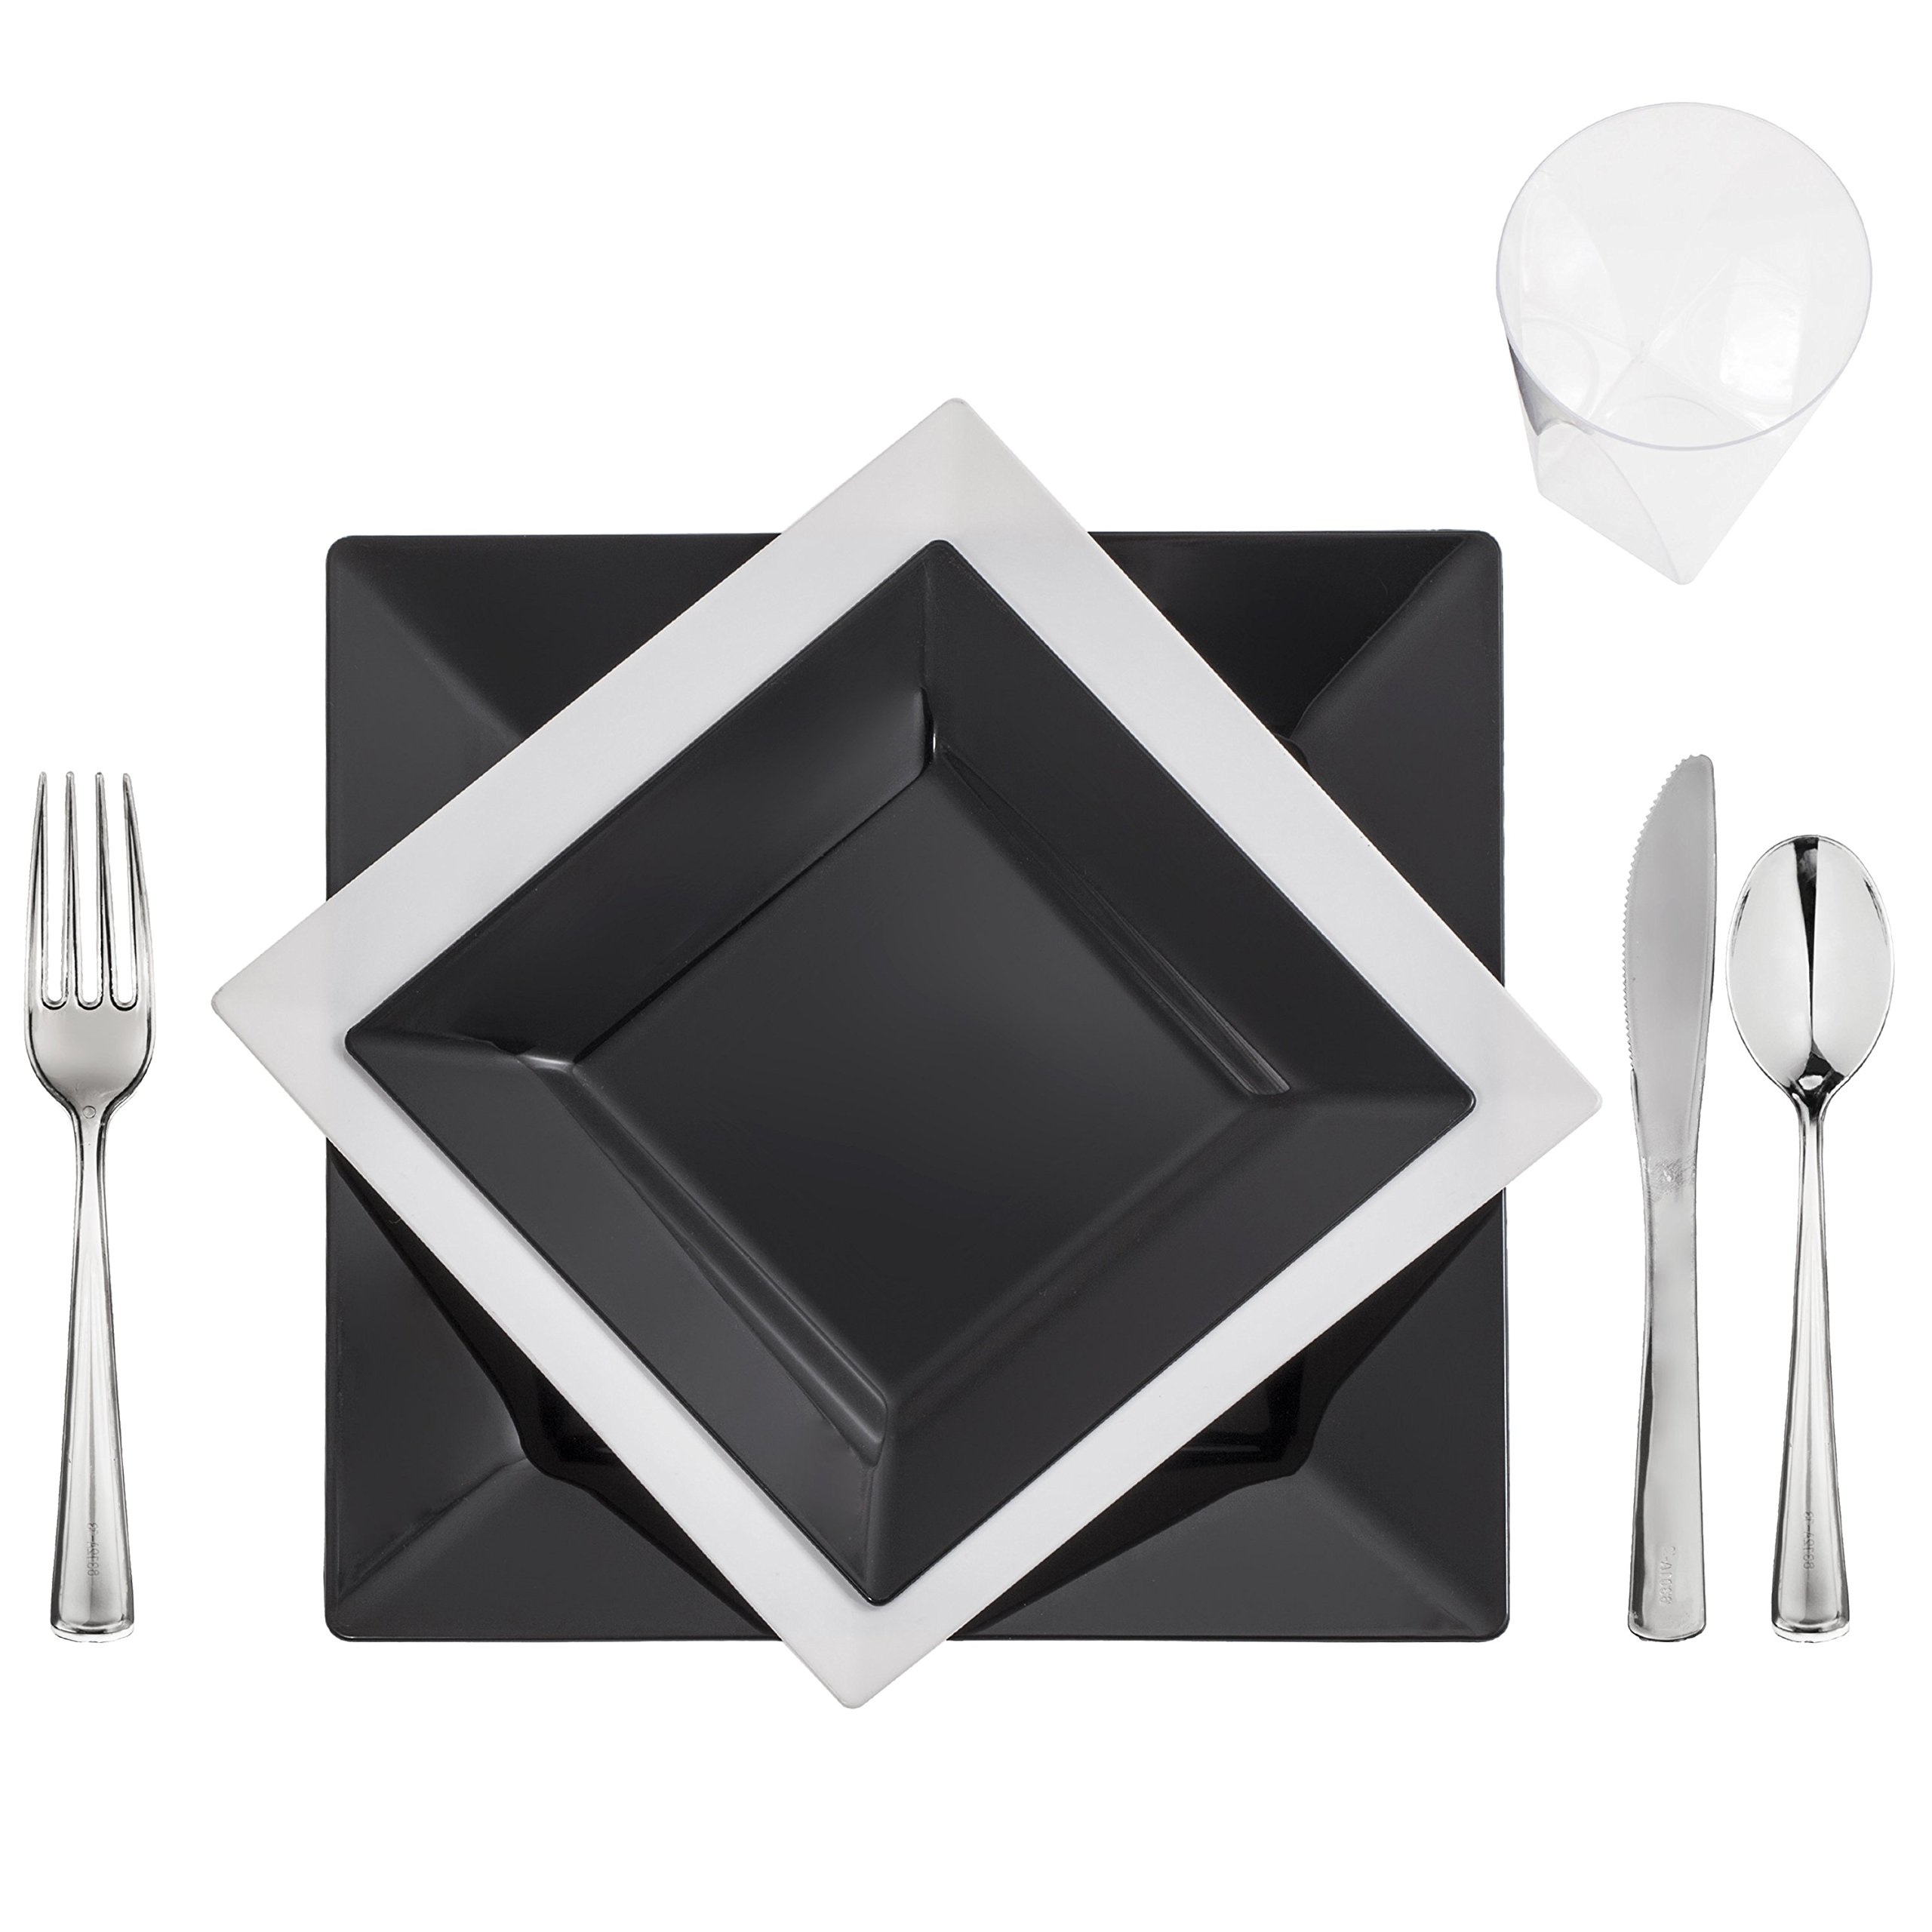 120 Full Table Settings BLACK-WHITE Square Plates, Cups, Cutlery ''WEDDING SPECIAL'' Heavy Duty Plastic Look Real